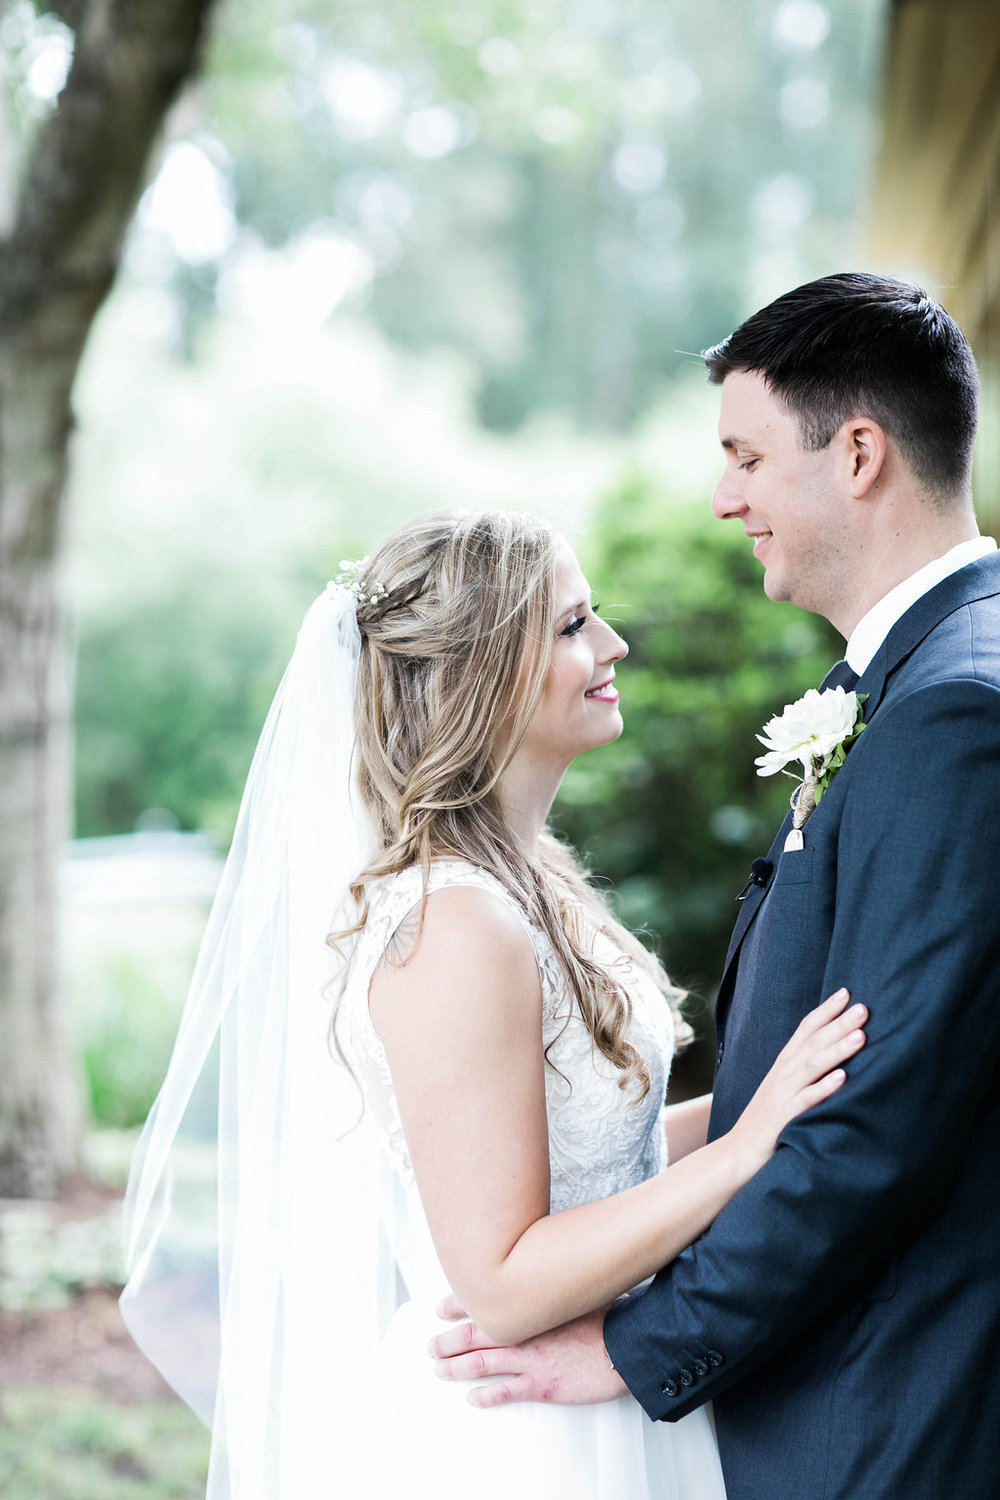 Nicole+Joe_Wedding_Seattle_McMennaminsBothell_6242015_64.jpg